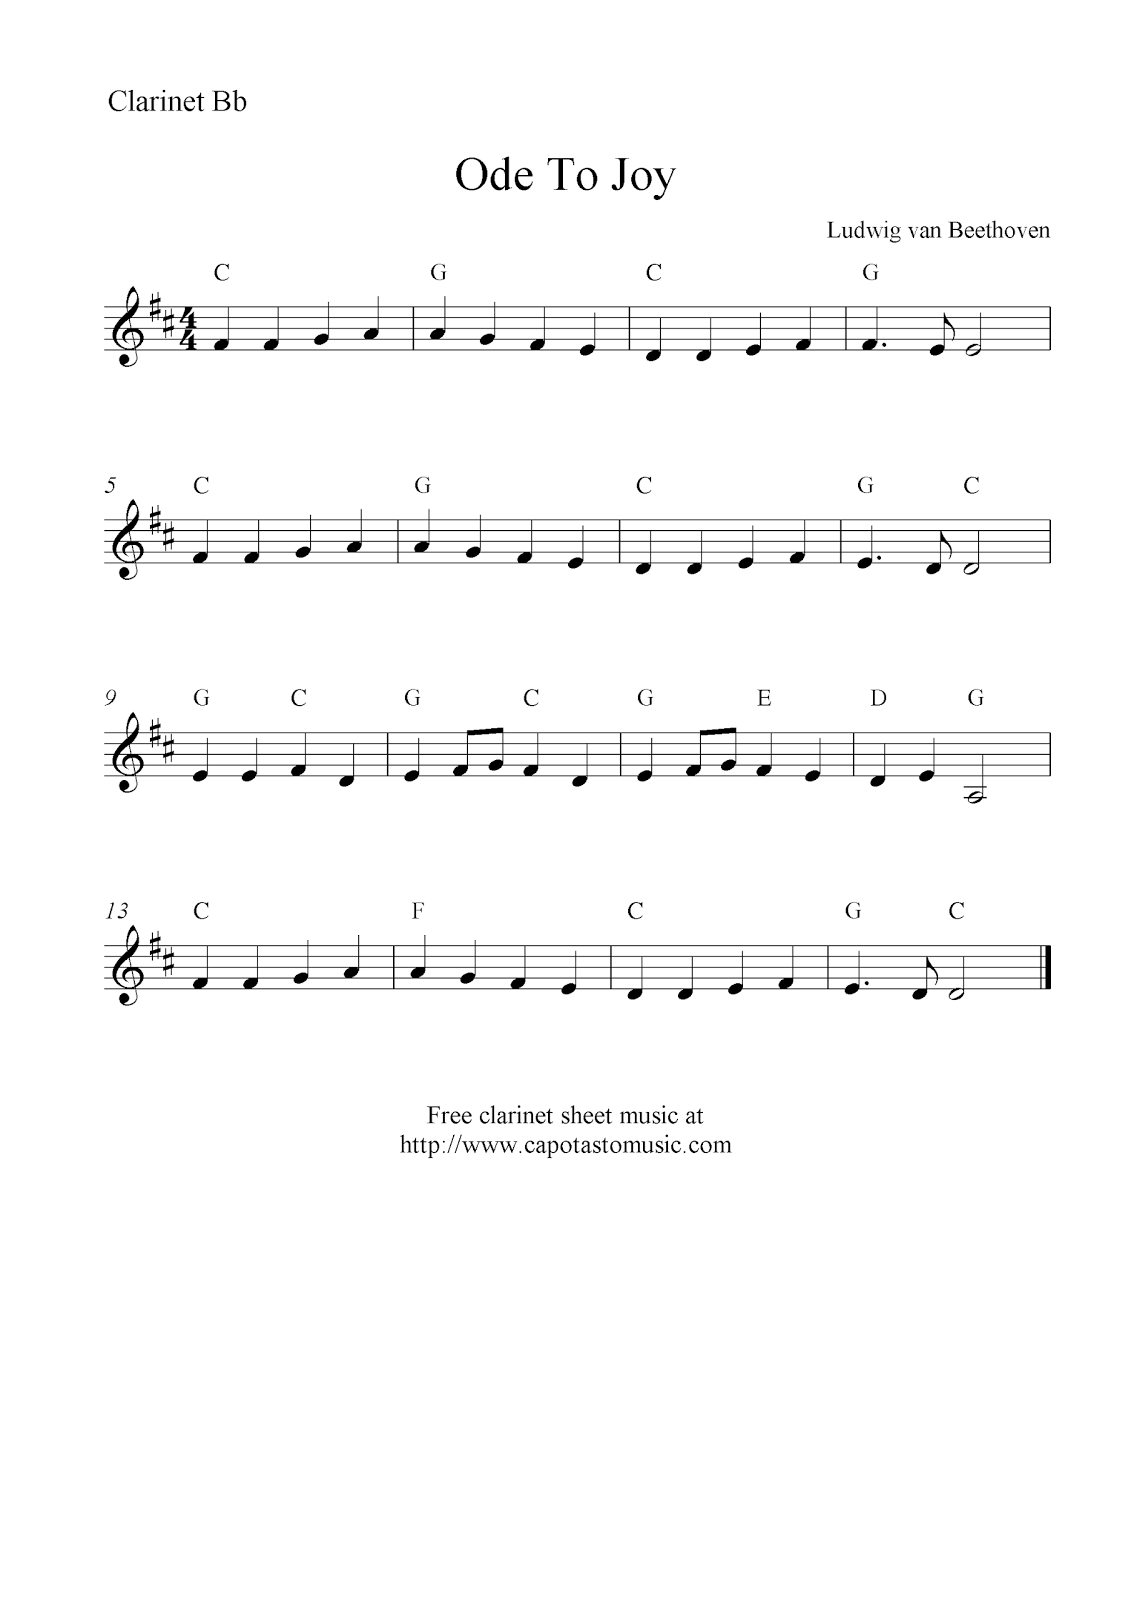 Ode To Joybeethoven, Free Clarinet Sheet Music Notes - Free Printable Clarinet Music